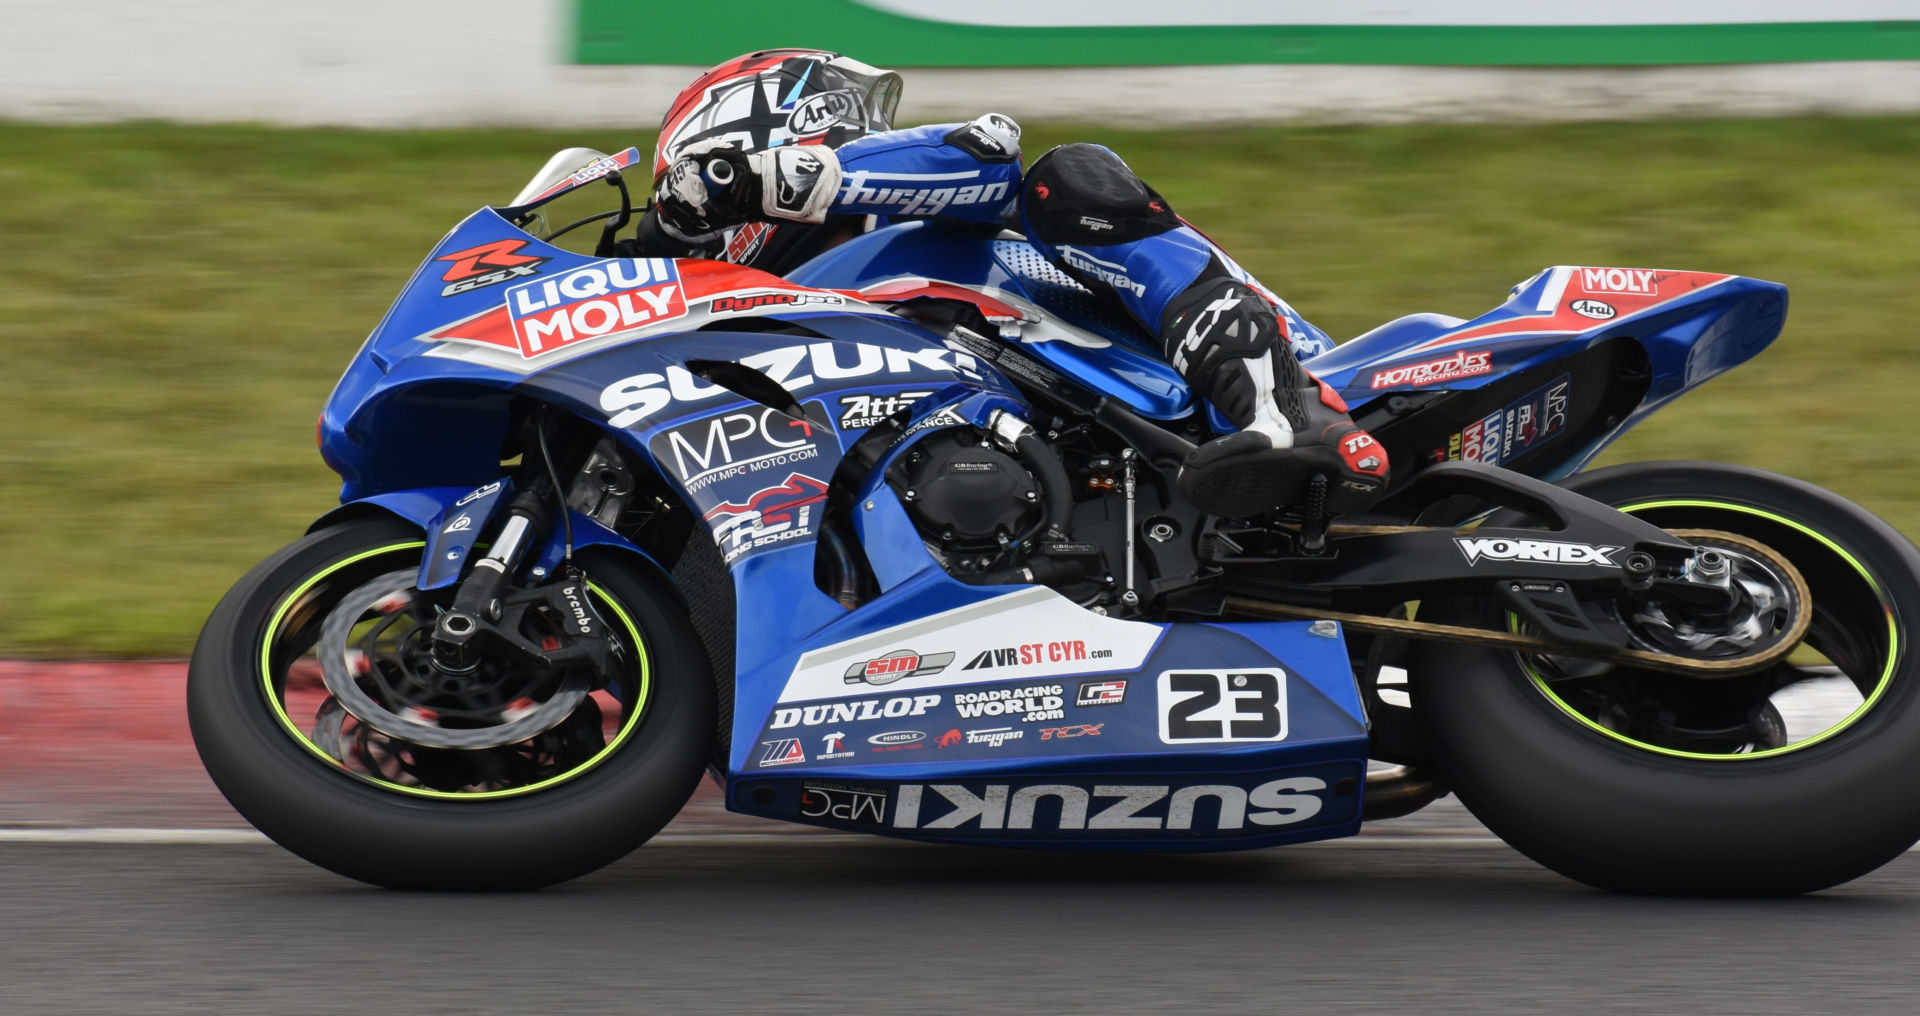 Rookie Alex Dumas (23) leads the 2021 Canadian Superbike Championship heading into the final round. Photo by Colin Fraser, courtesy CSBK